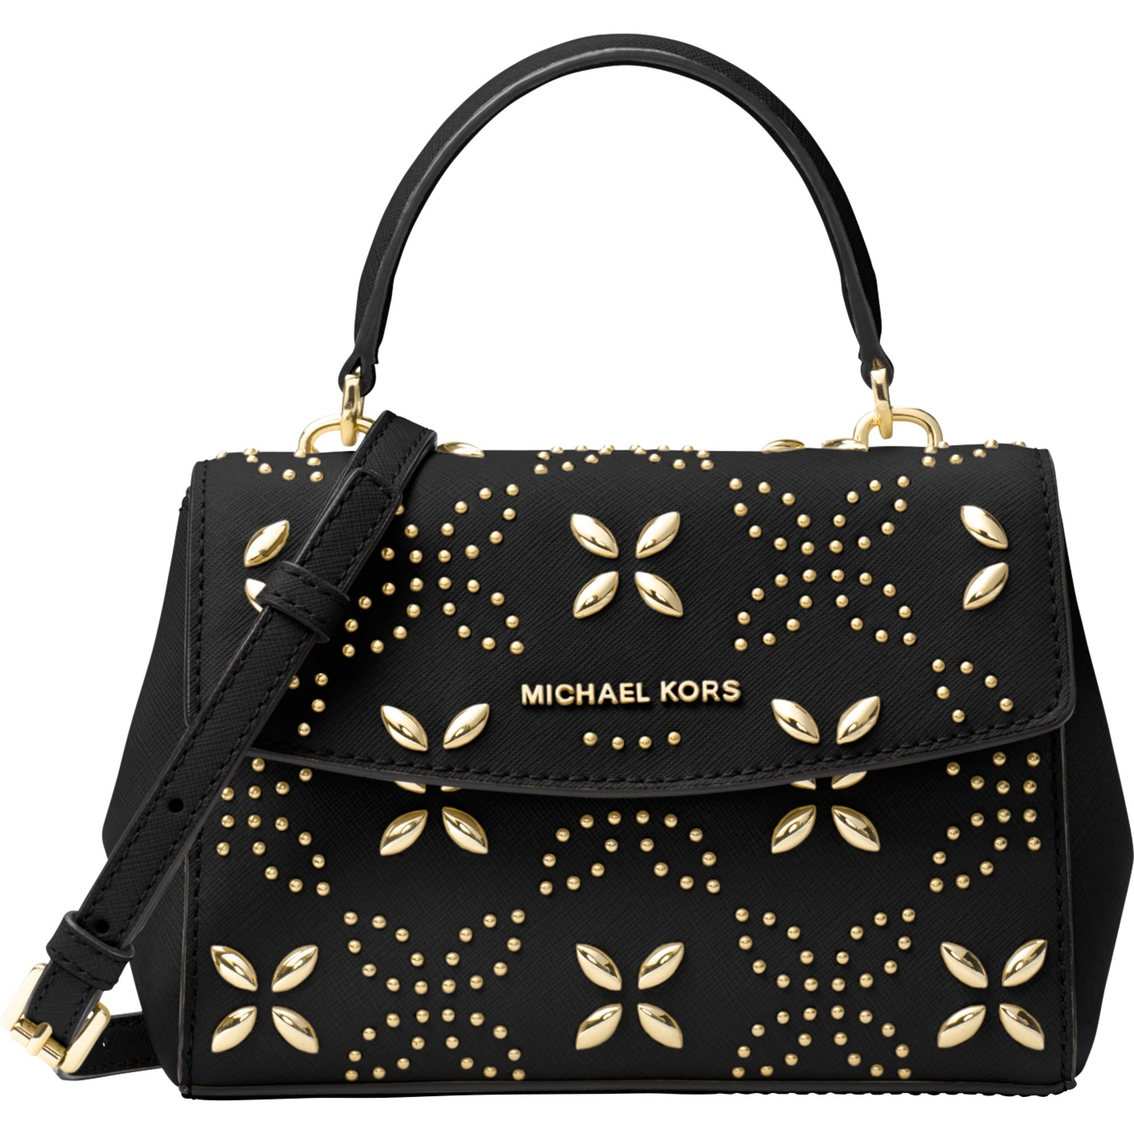 Michael Kors Ava Floral Stud Extra Small Crossbody | Handbags | Apparel | Shop The Exchange